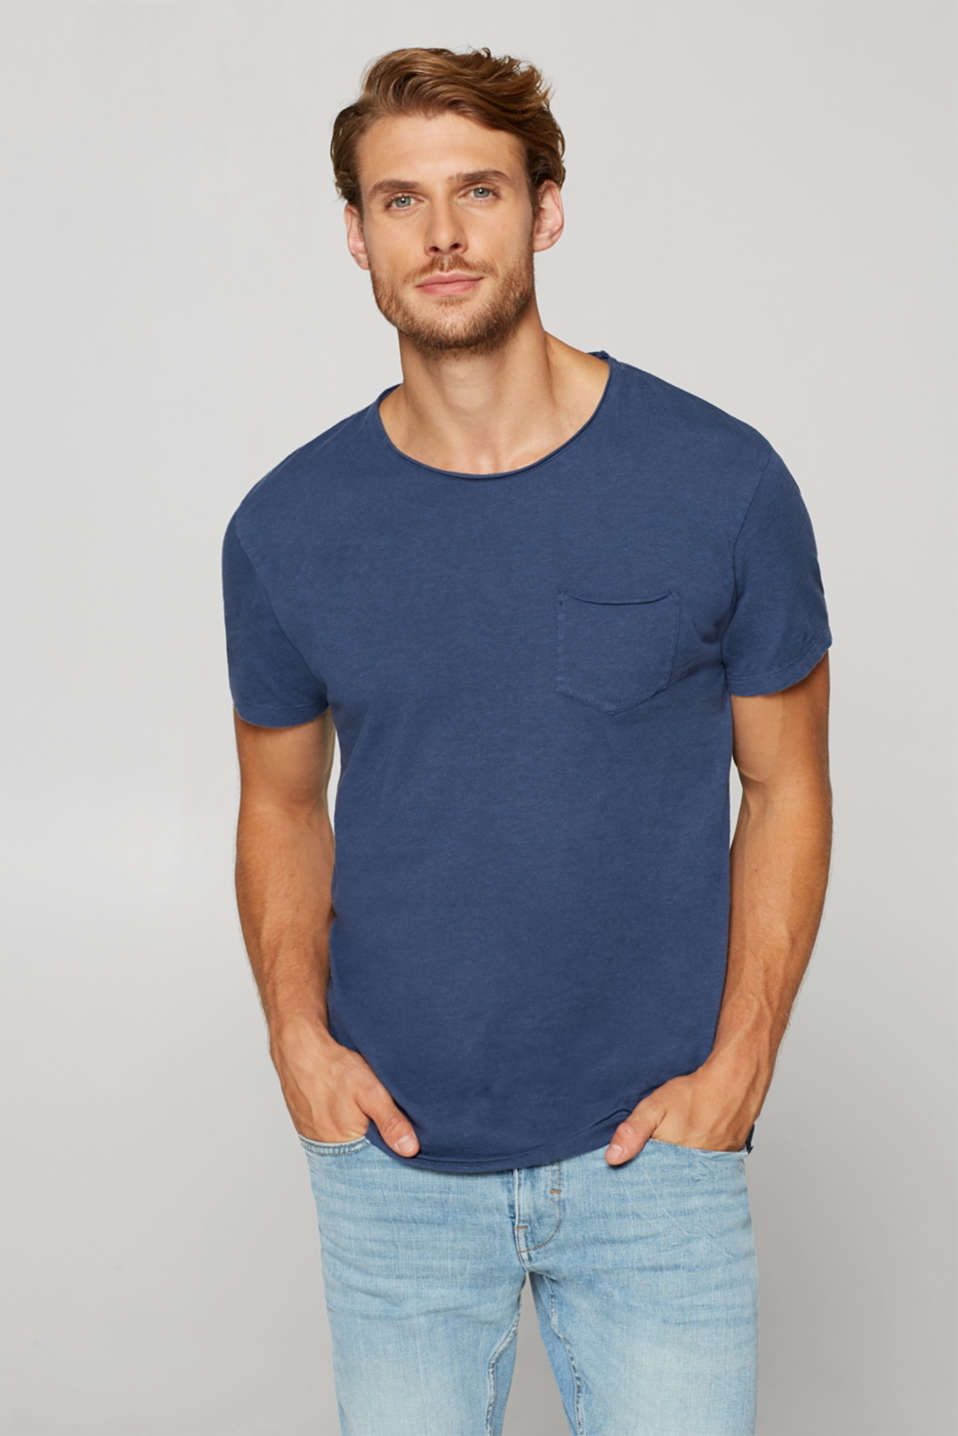 edc - Jersey T-shirt with a breast pocket. 100% cotton